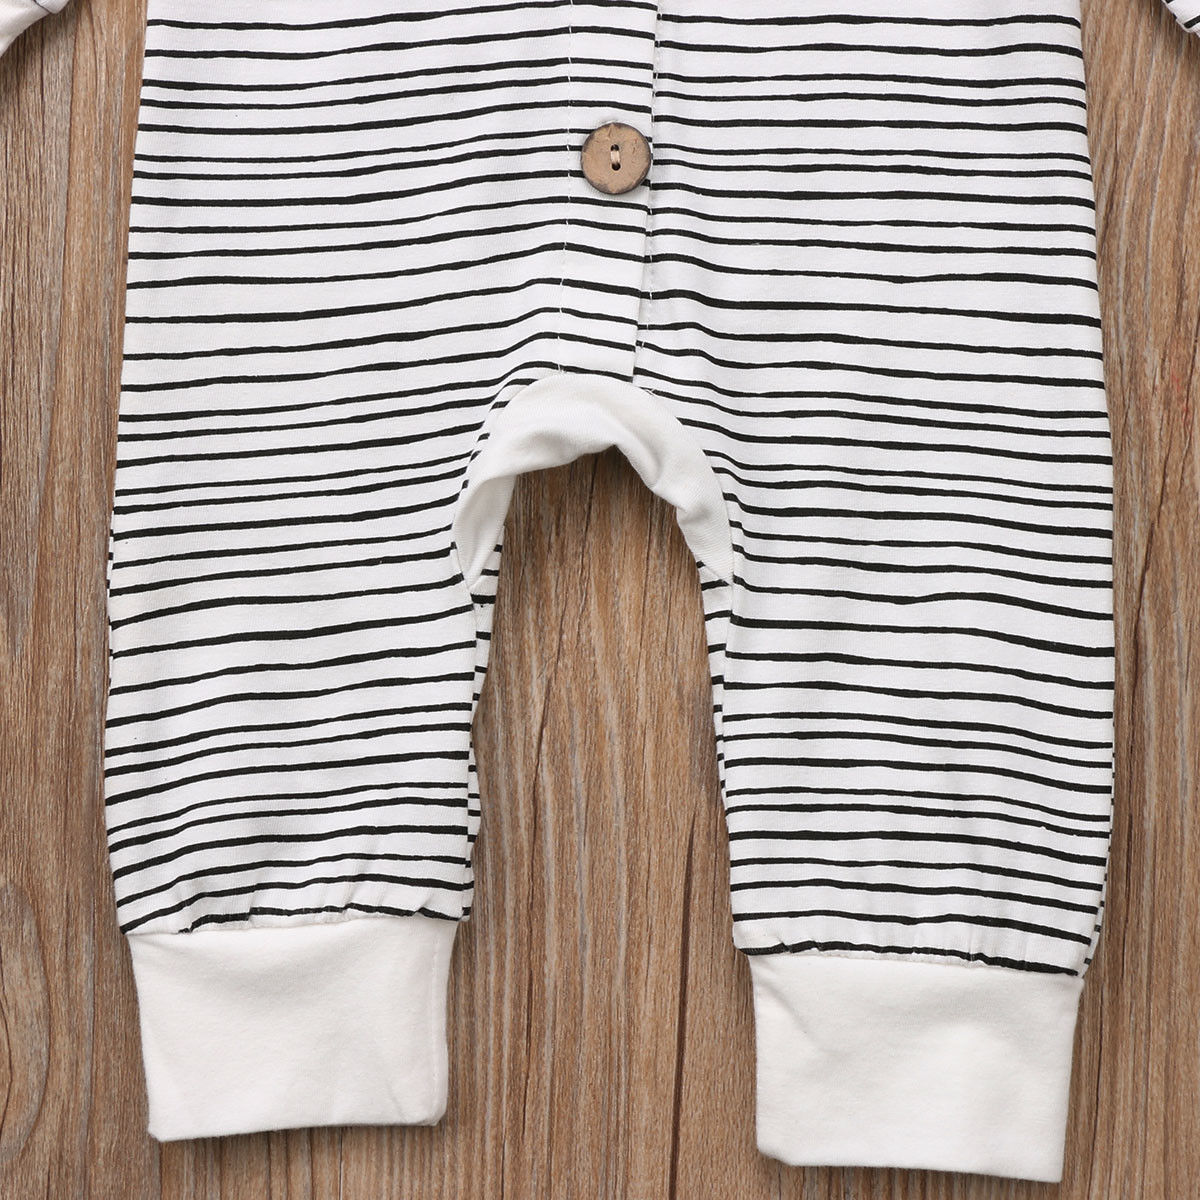 2018 Brand New Toddler Newborn Baby Boy Girl Warm Infant Romper Striped Jumpsuit Hooded Clothes Long 2018 Brand New Toddler Newborn Baby Boy Girl Warm Infant Romper Striped Jumpsuit Hooded Clothes Long Sleeve Outfit